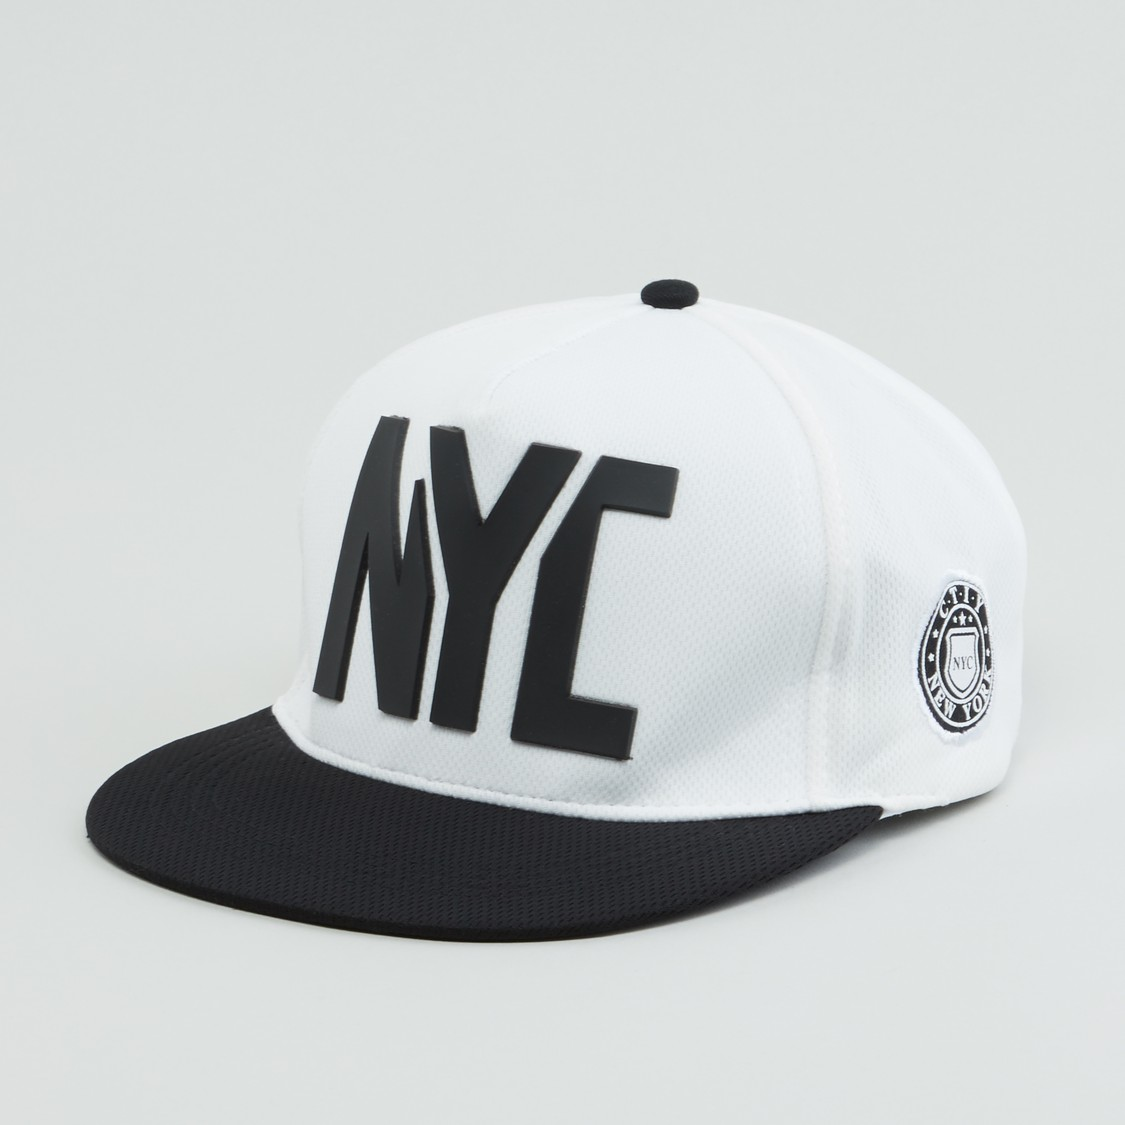 NYC Embossed Cap with Snap Button Closure